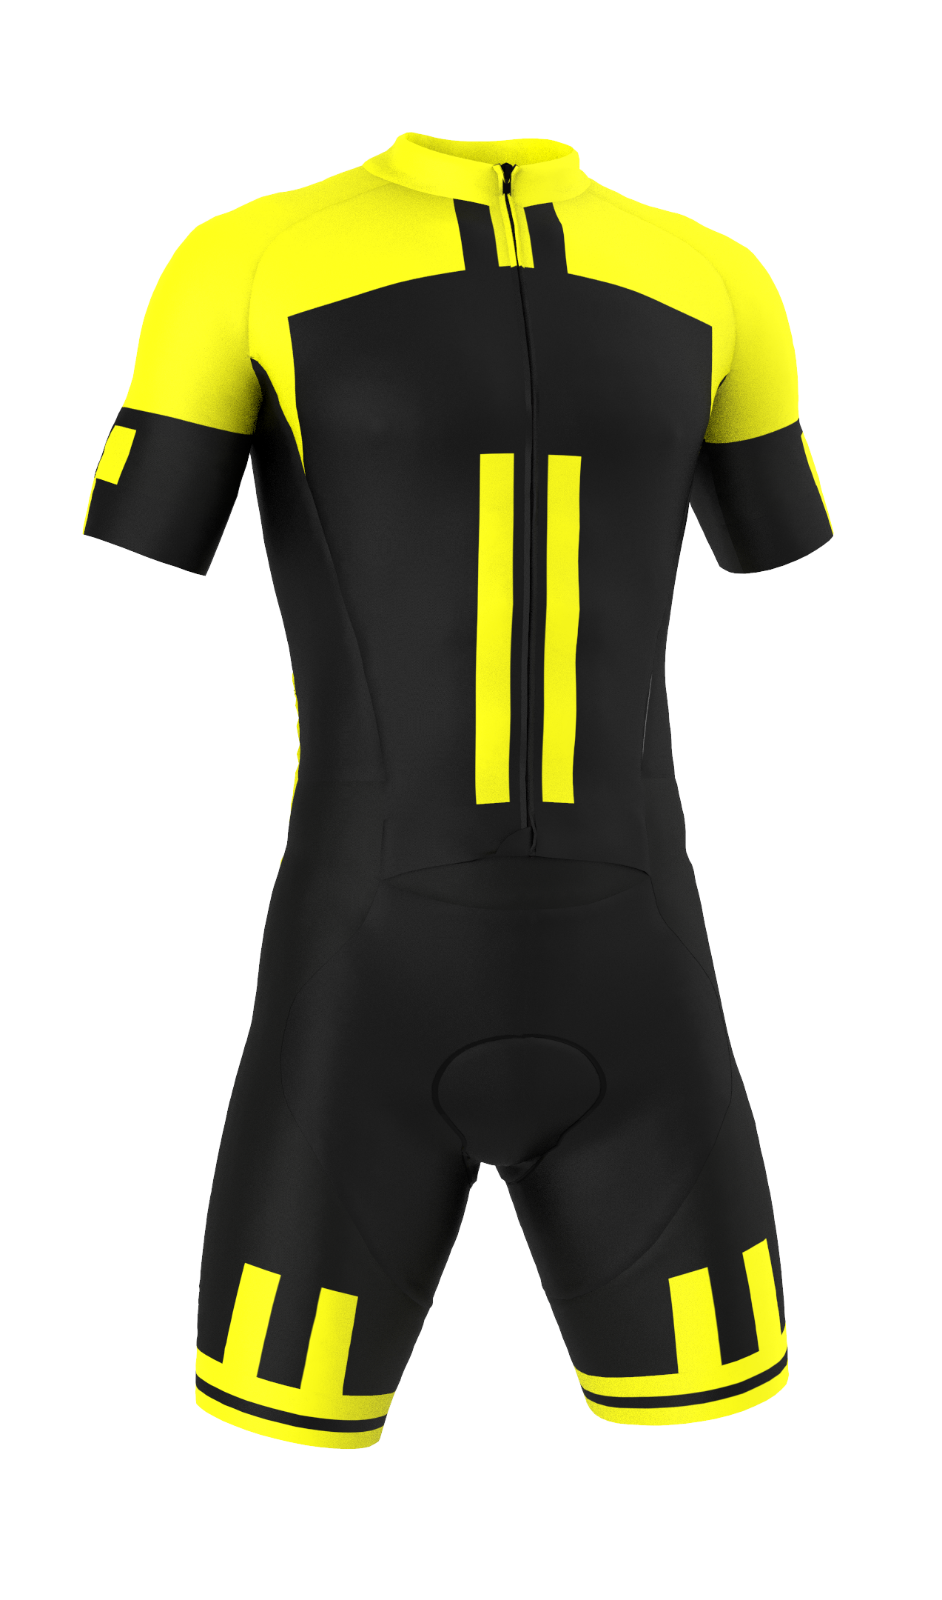 PRO Short Sleeve 'Giallo Nero' Cycling Road Suit (Skinsuit) Made in  by GSG